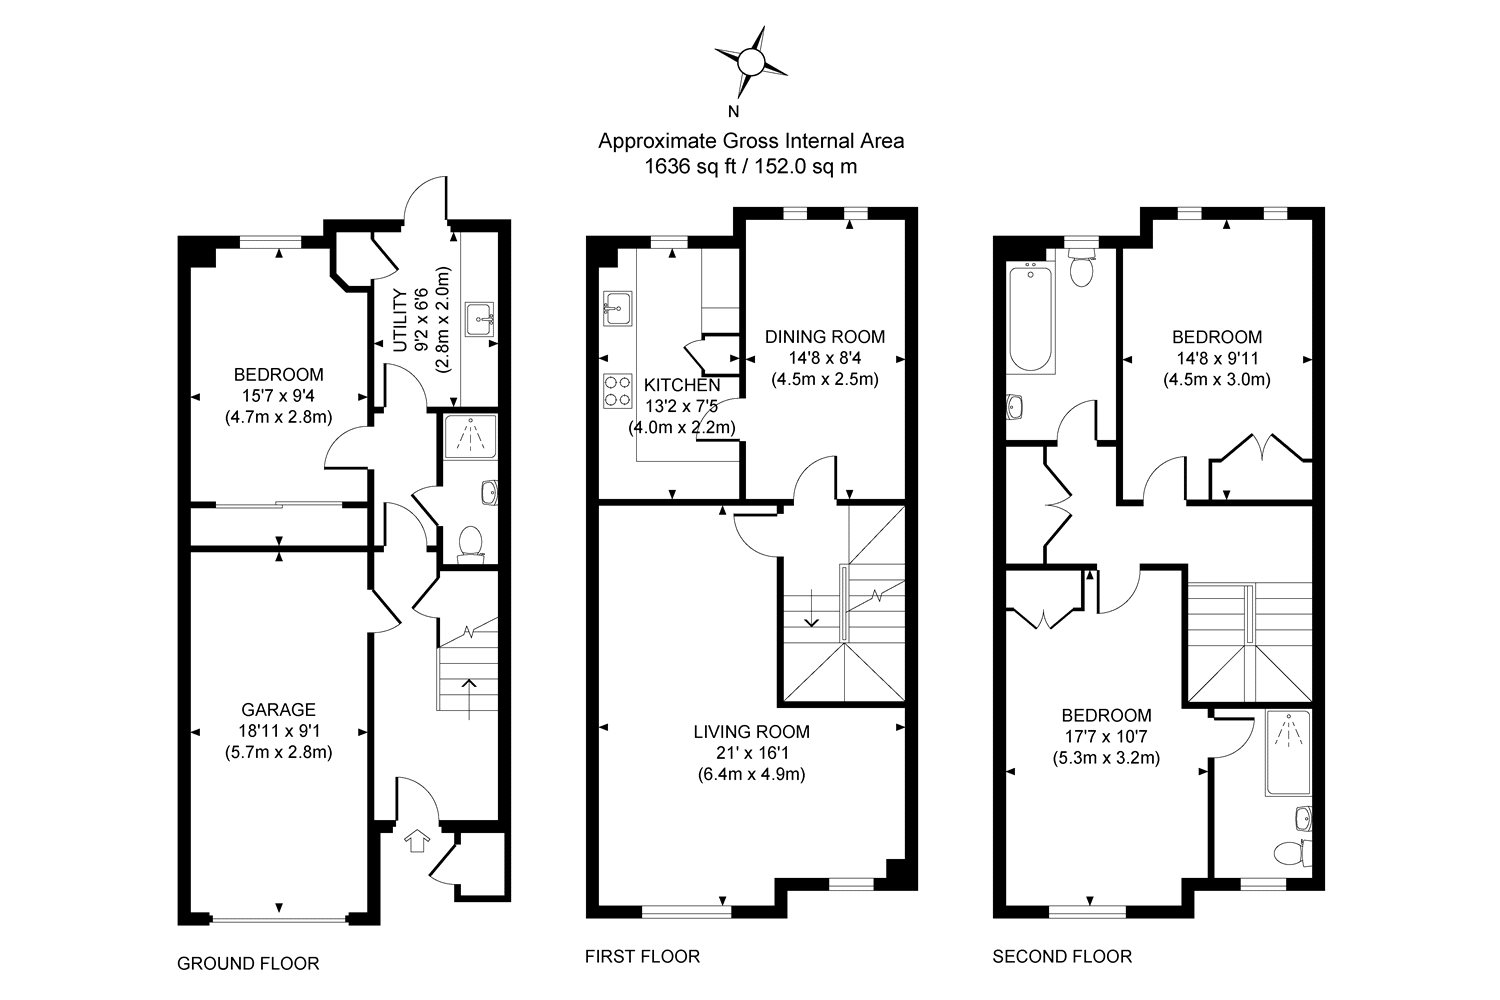 Bath Taps Shower Attachment 3 Bedroom House For Sale In Woking